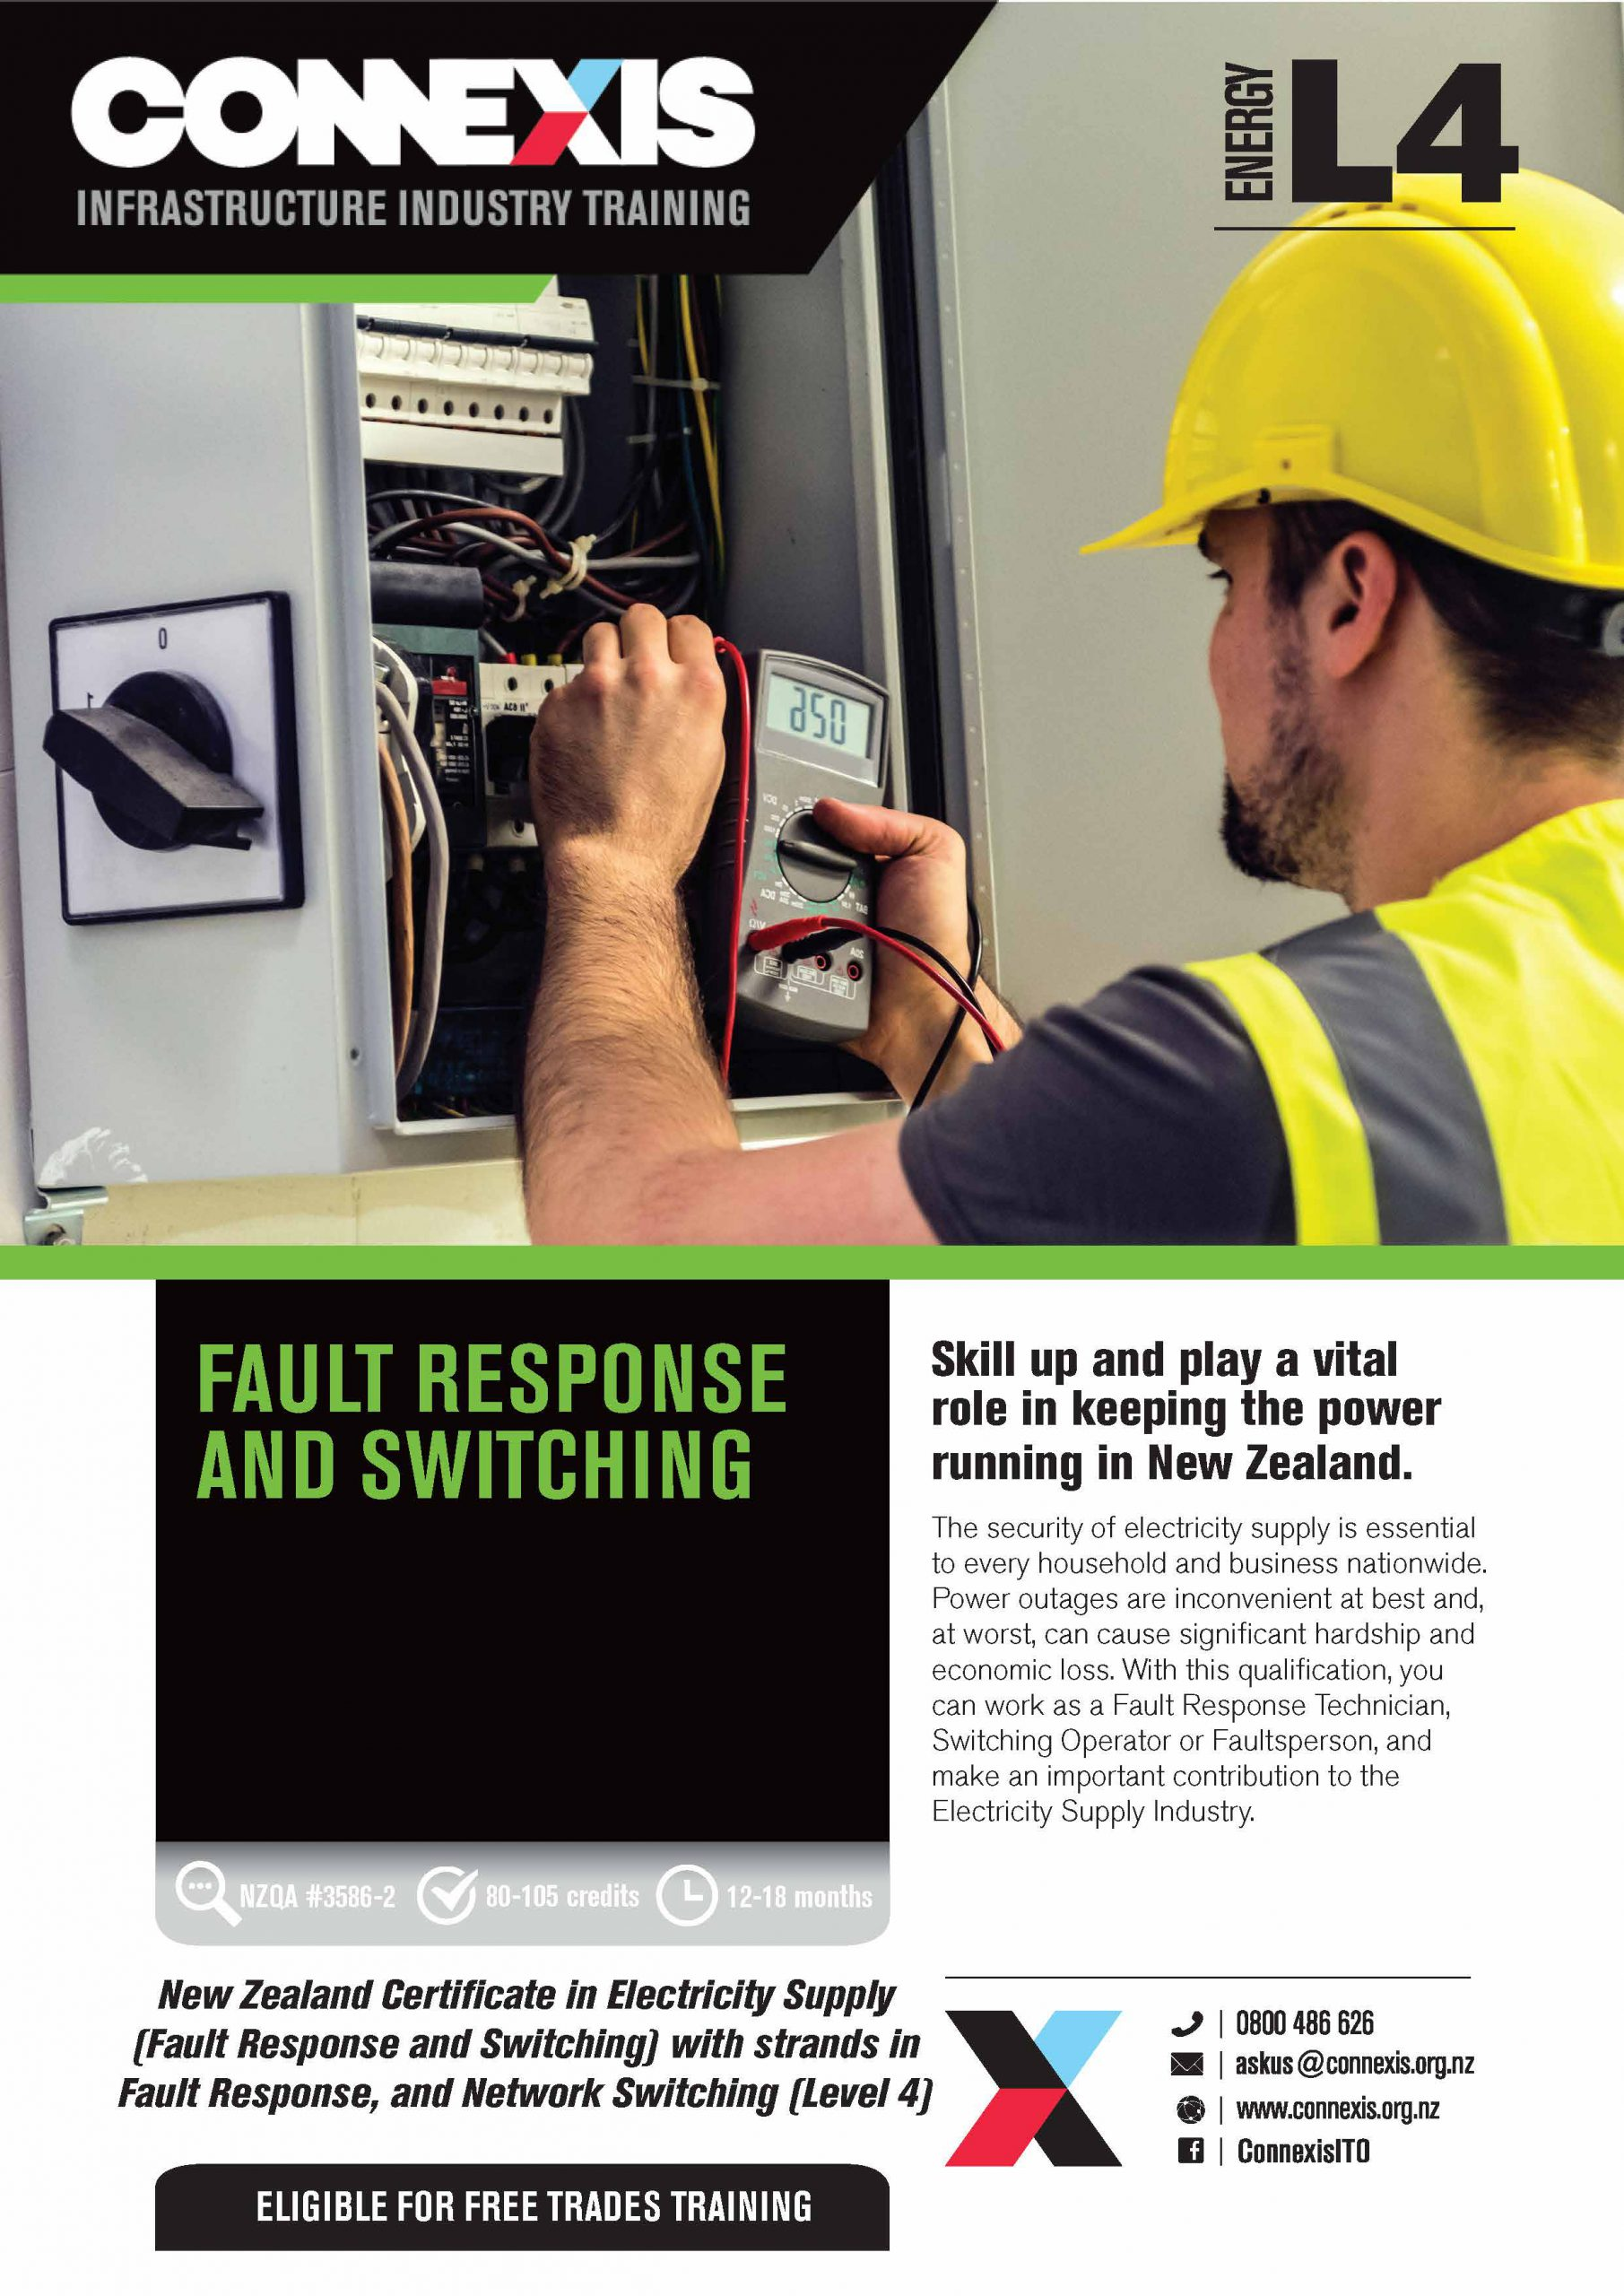 NZC Fault Response and Switching